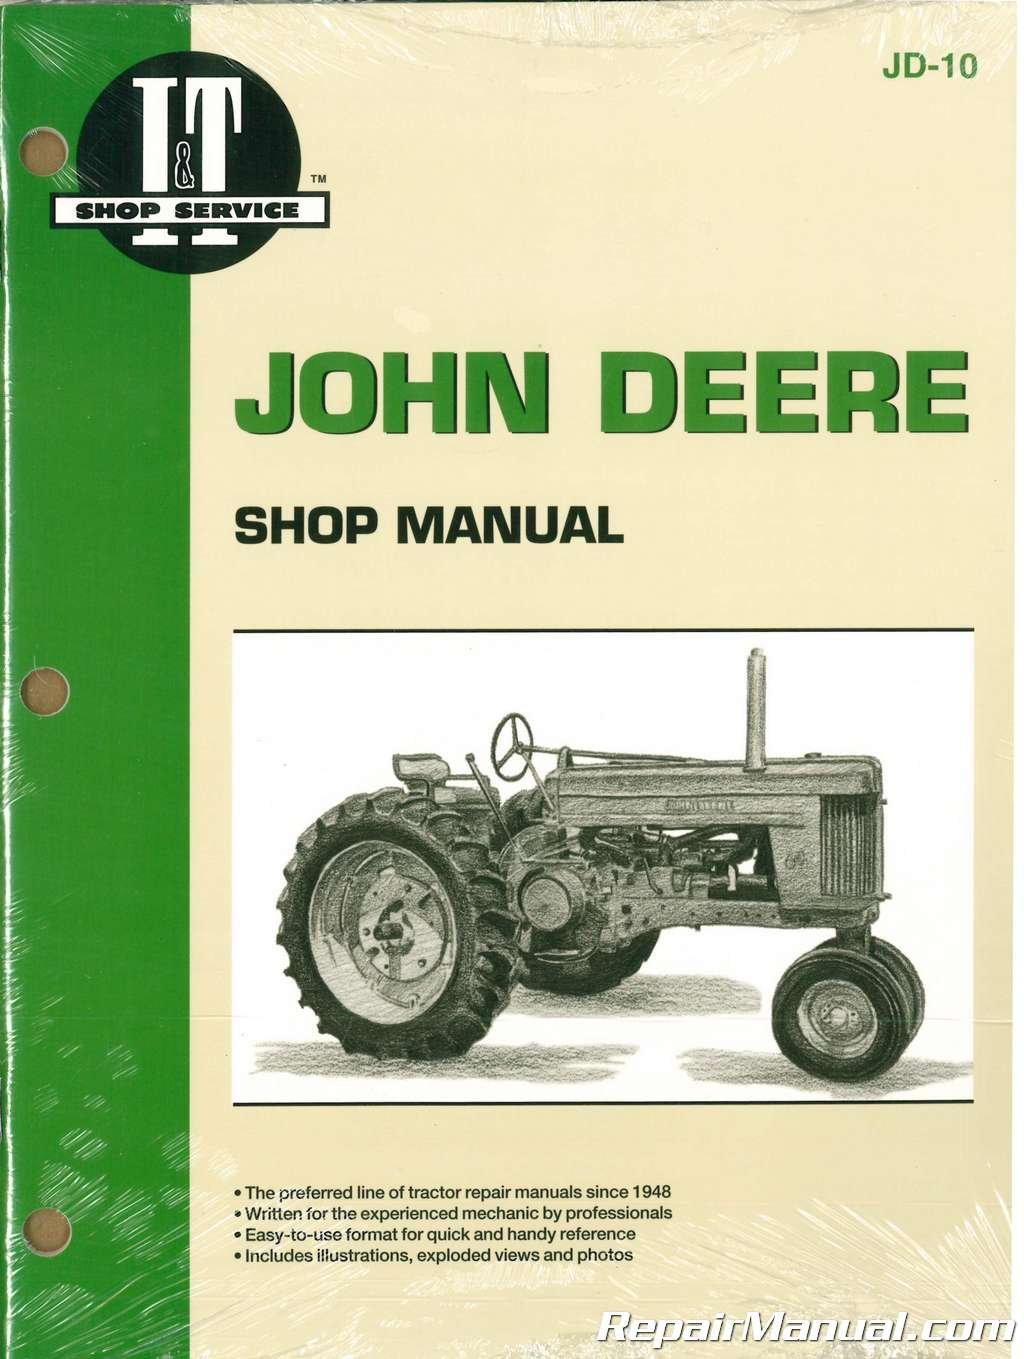 Jd10 John Deere 50 60 70 Tractor Repair Manual Manufacturer. Jd10 John Deere 50 60 70 Tractor Repair Manual Manufacturer Amazon Books. John Deere. John Deere 70 Lawn Mower Electrical Diagrams At Scoala.co